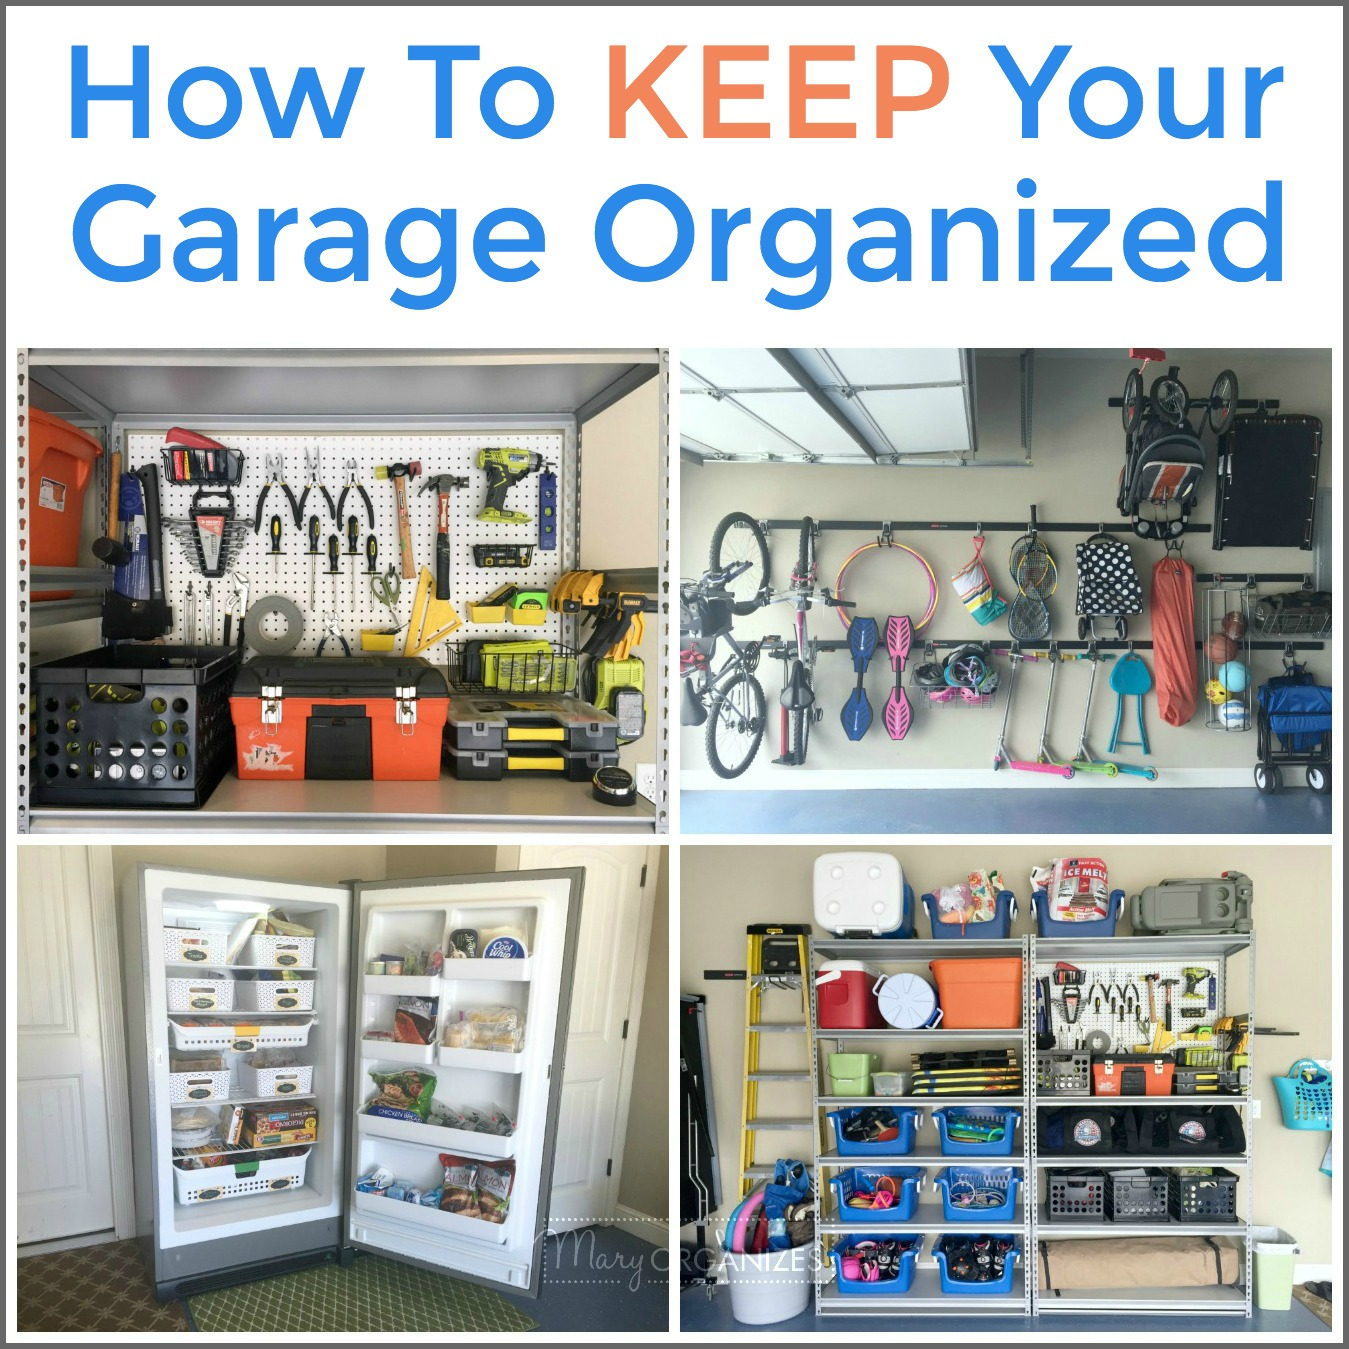 How To Keep Your Garage Organized -s